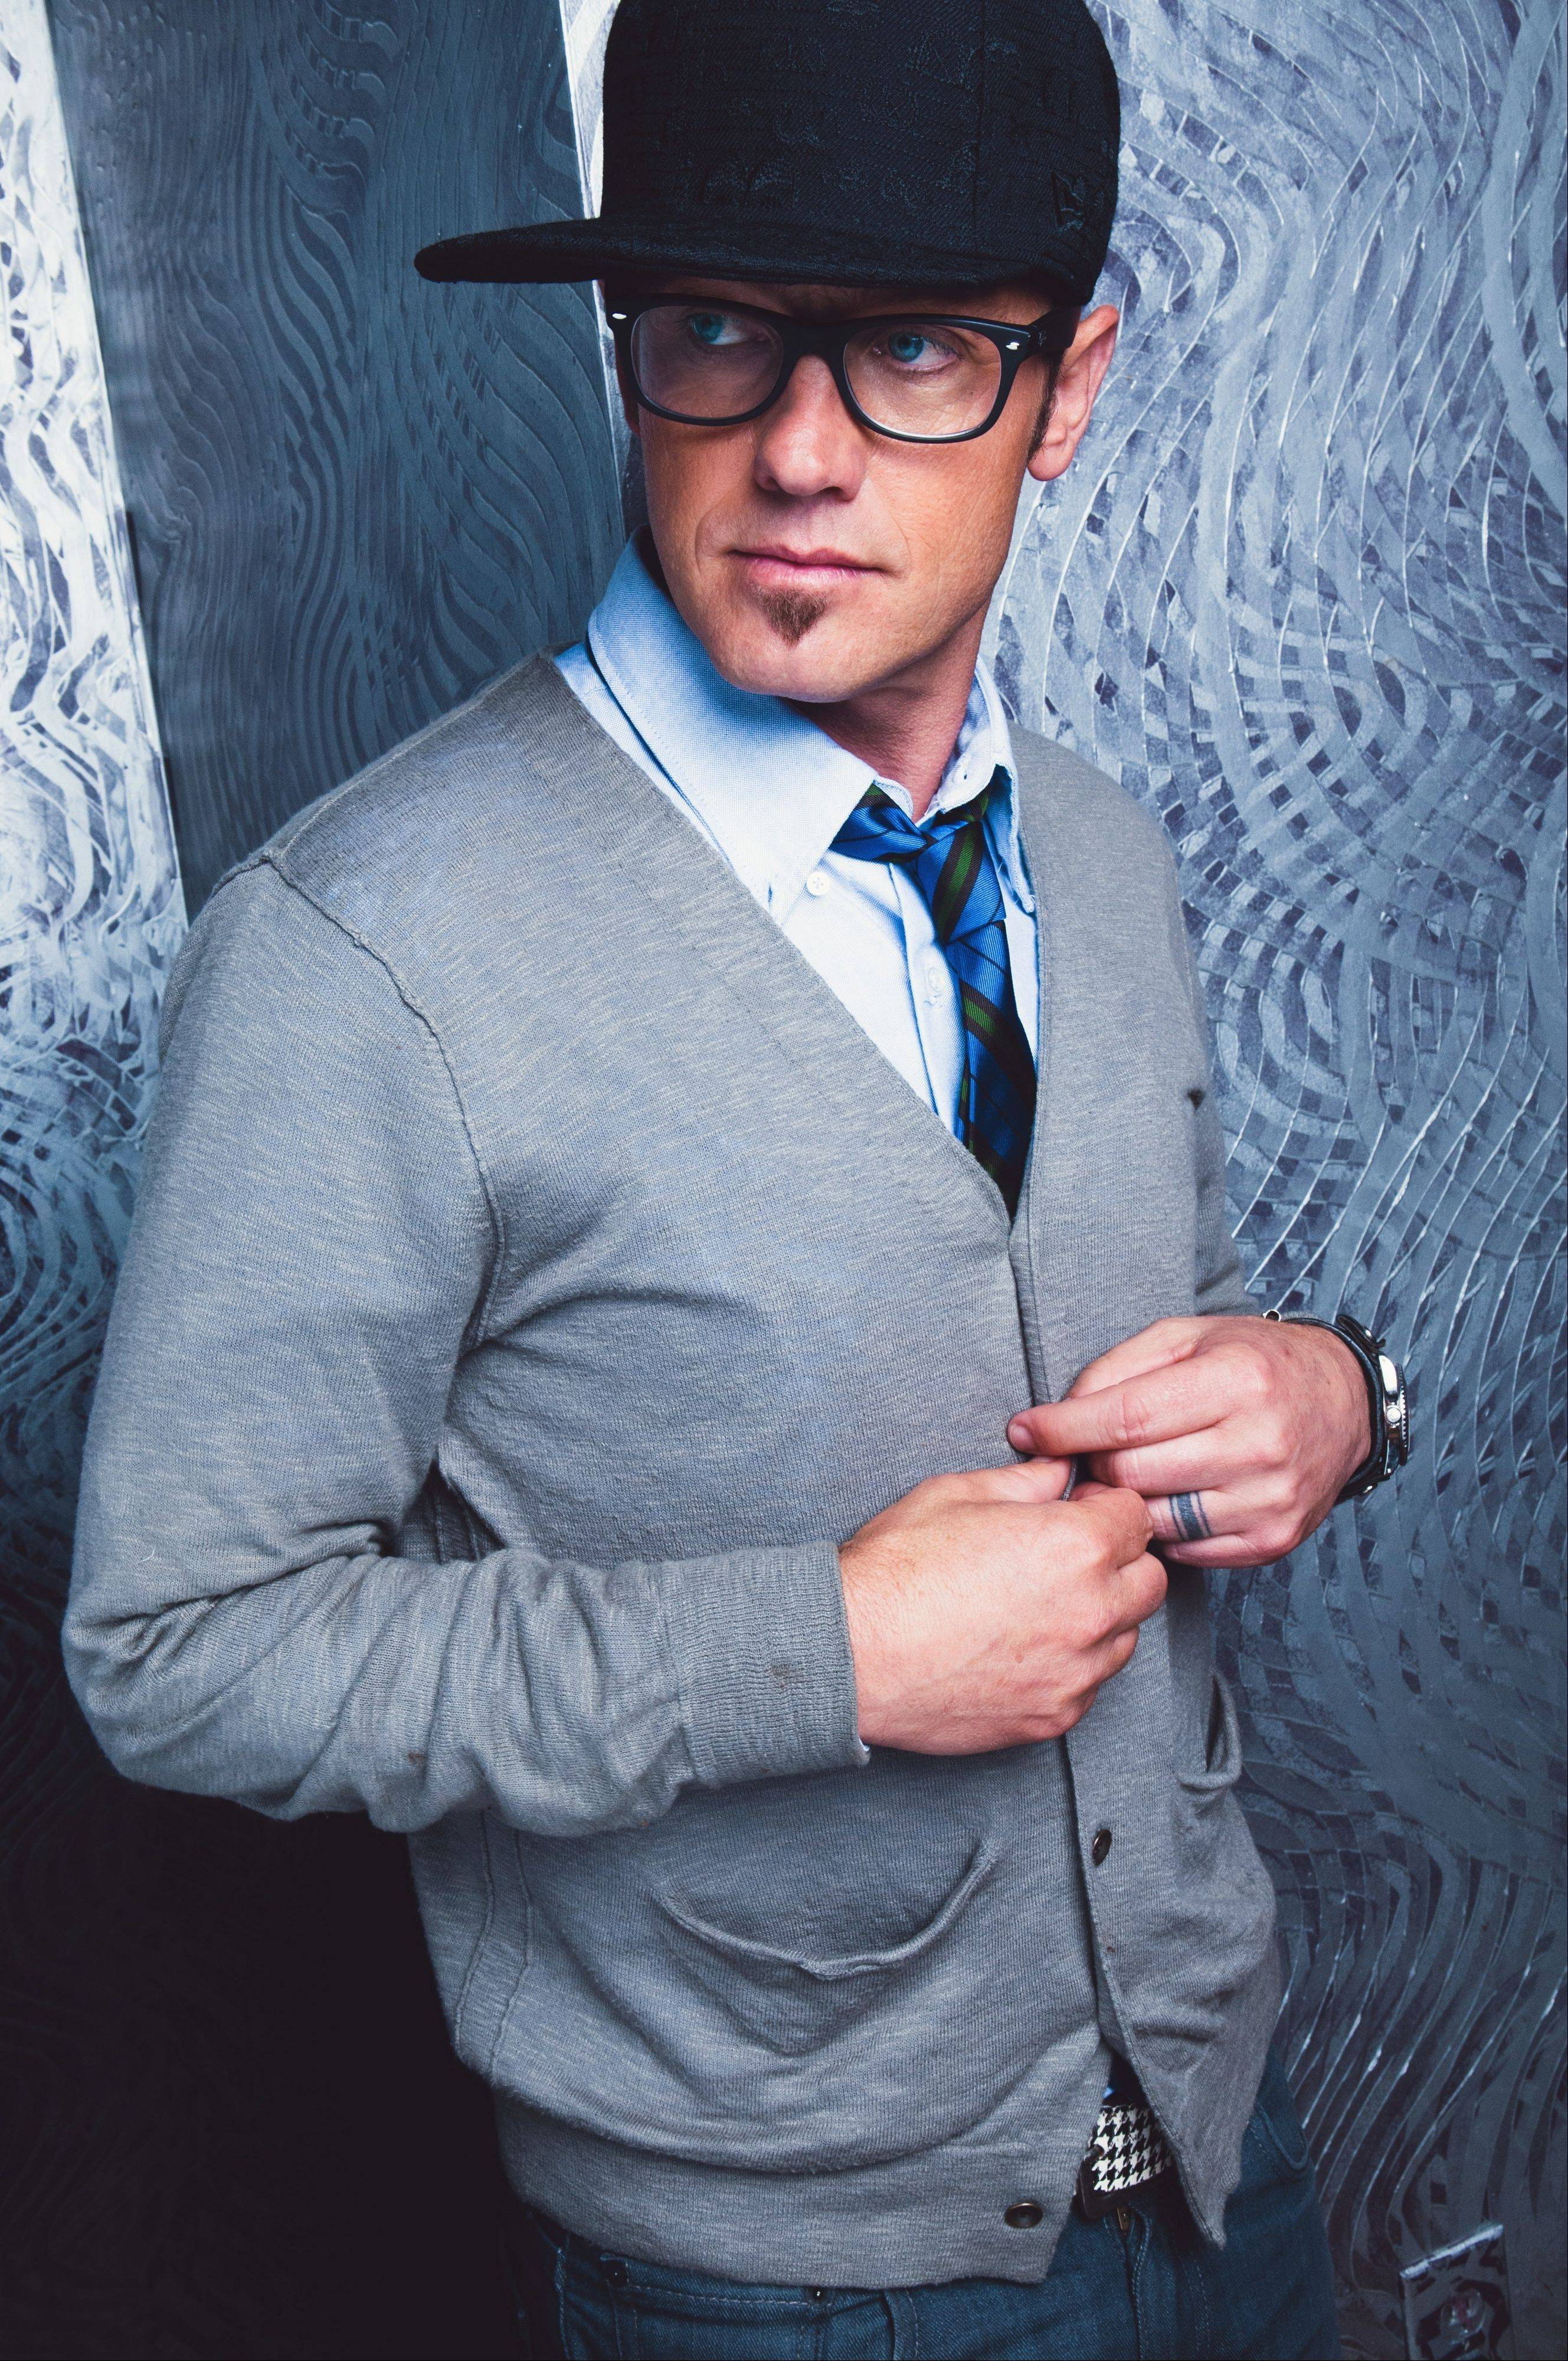 TobyMac is one of the performers with the Winter Jam 2013 Tour Spectacular which comes to the Sears Centre Arena on Saturday, Feb. 23.